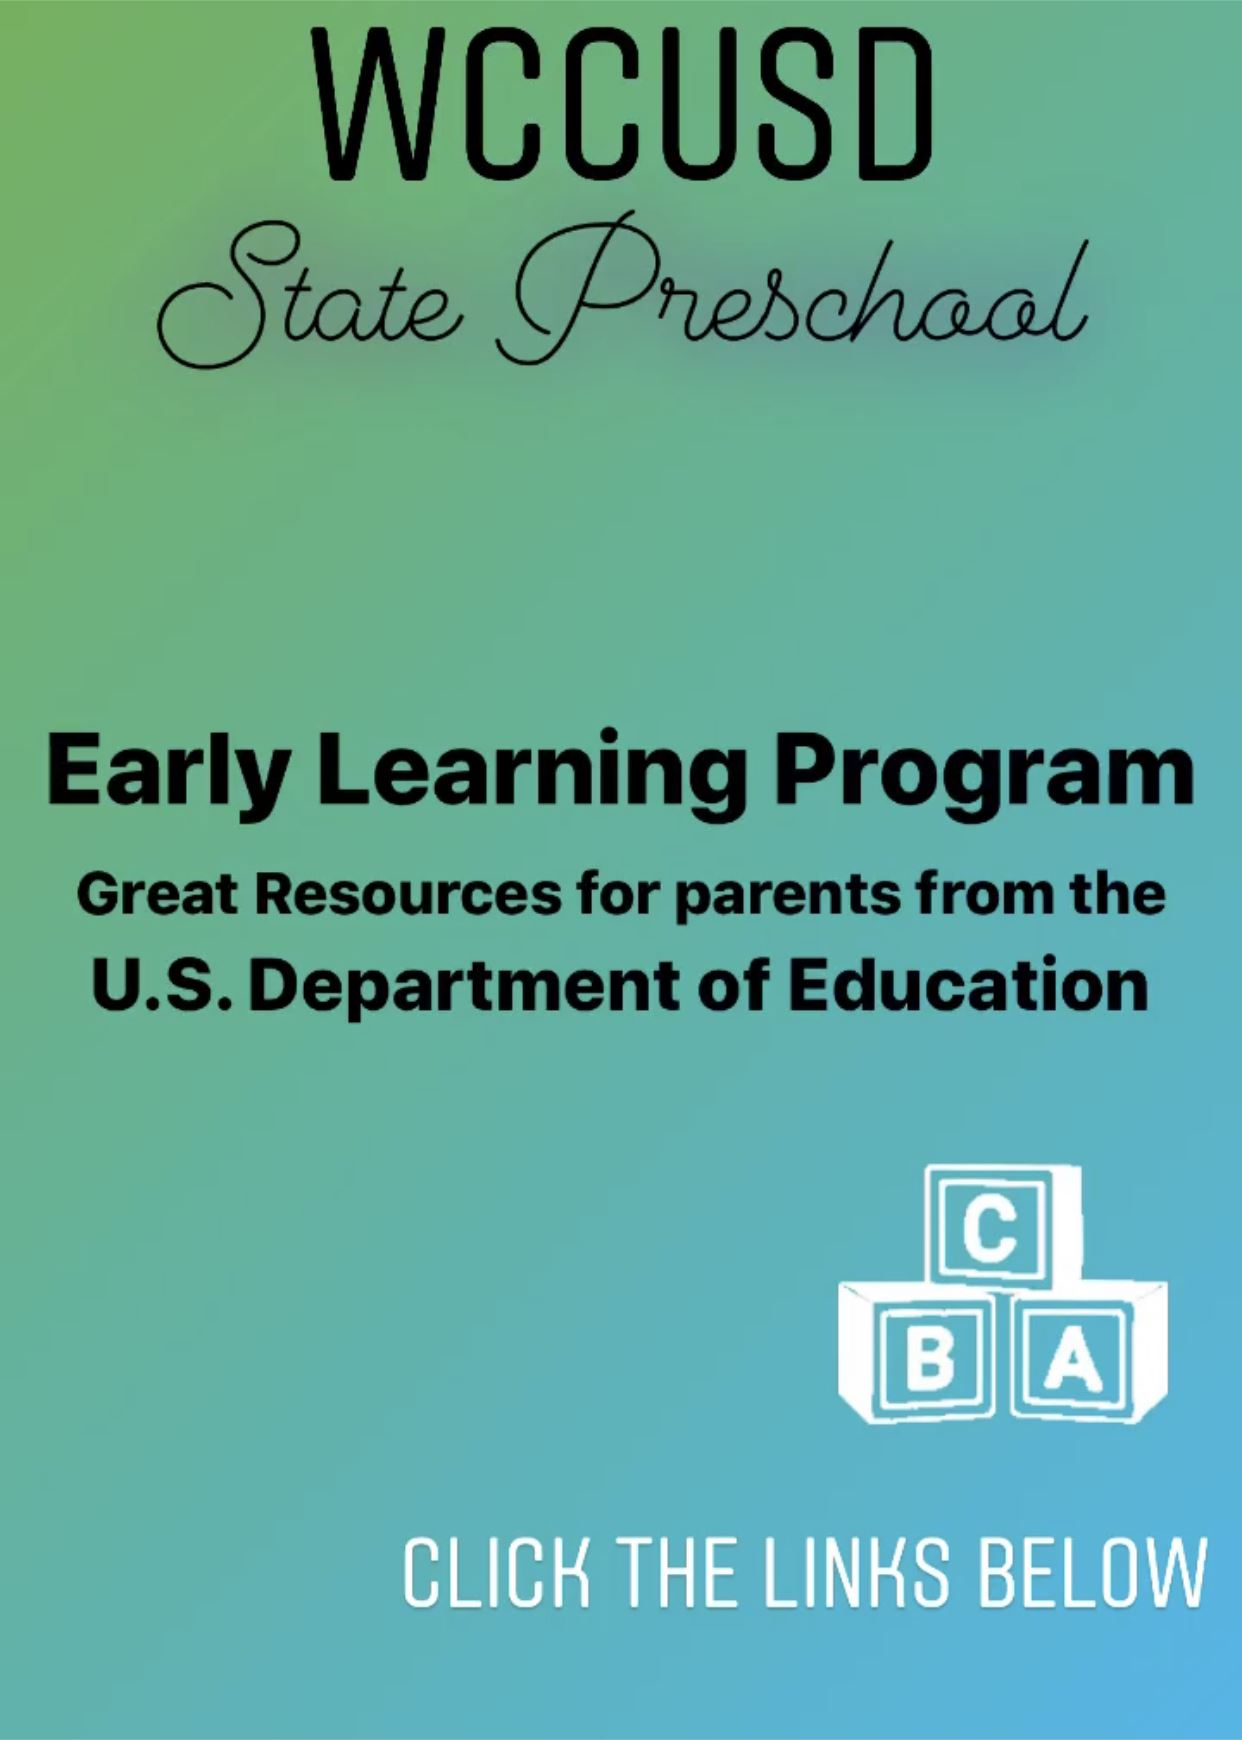 US Department of Education Resources for Parents